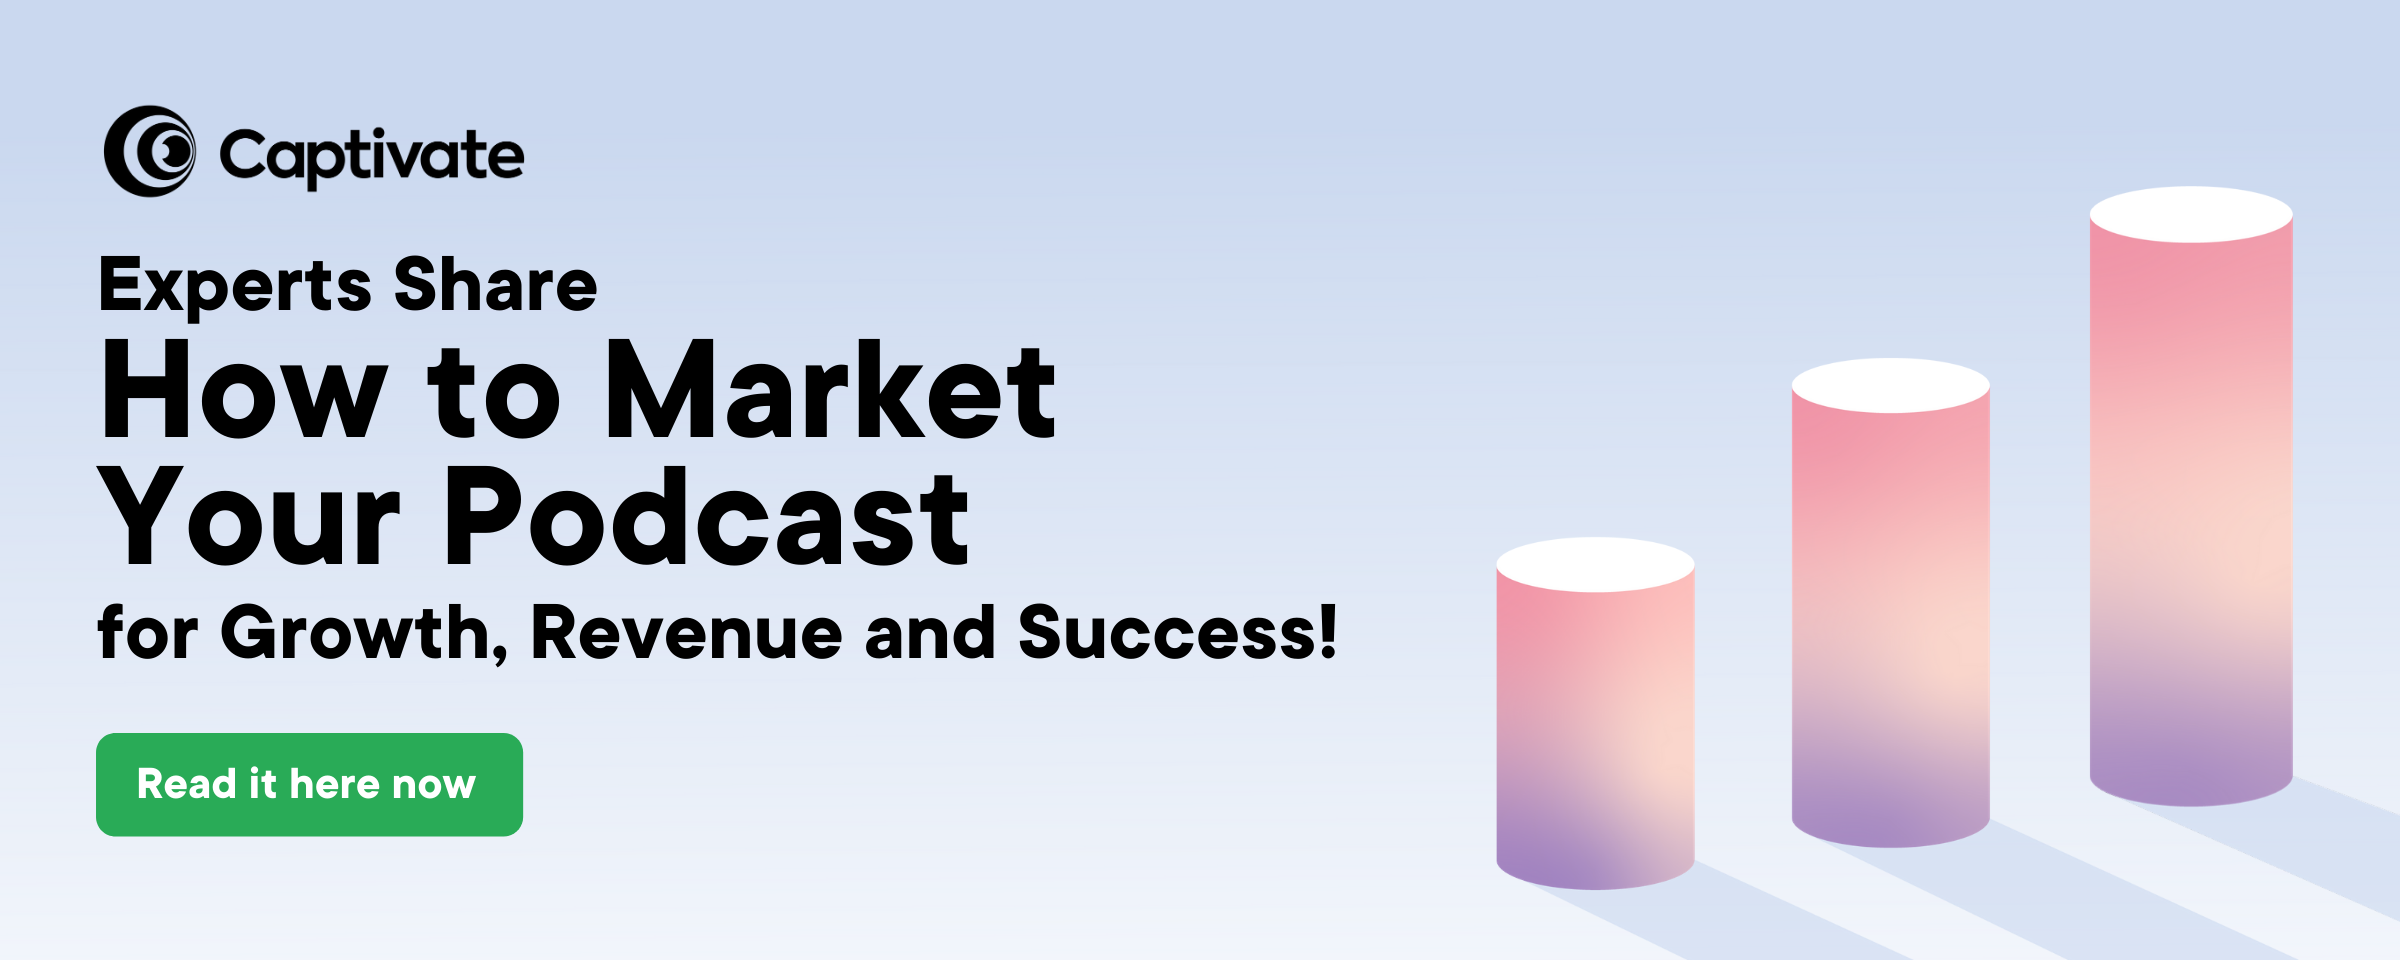 How To Market Your Podcast Read More